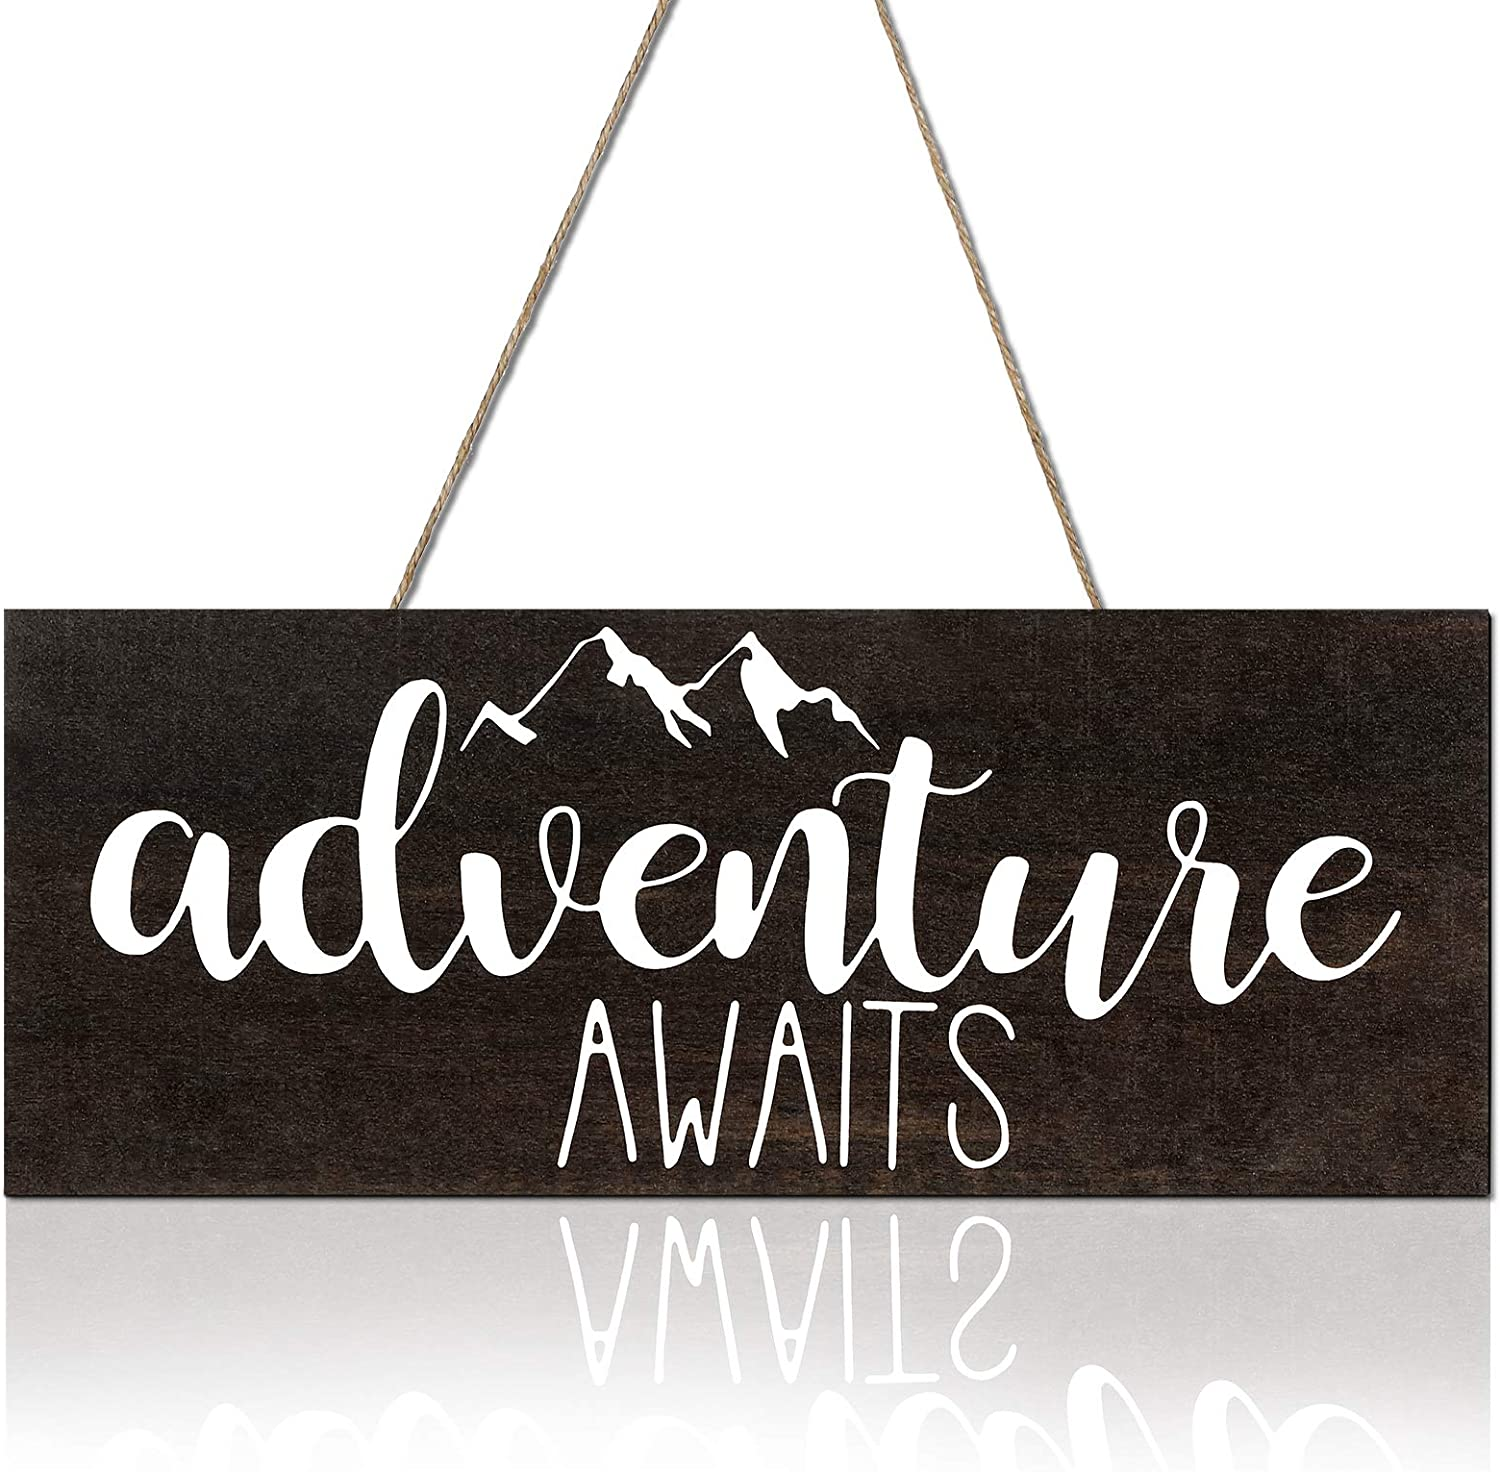 Namalu Adventure Awaits Rustic Wooden Plank Sign Rustic Wooden Sign Country Wall Decorations Farmhouse Family Wooden Signs Farmhouse Theme Room Decor